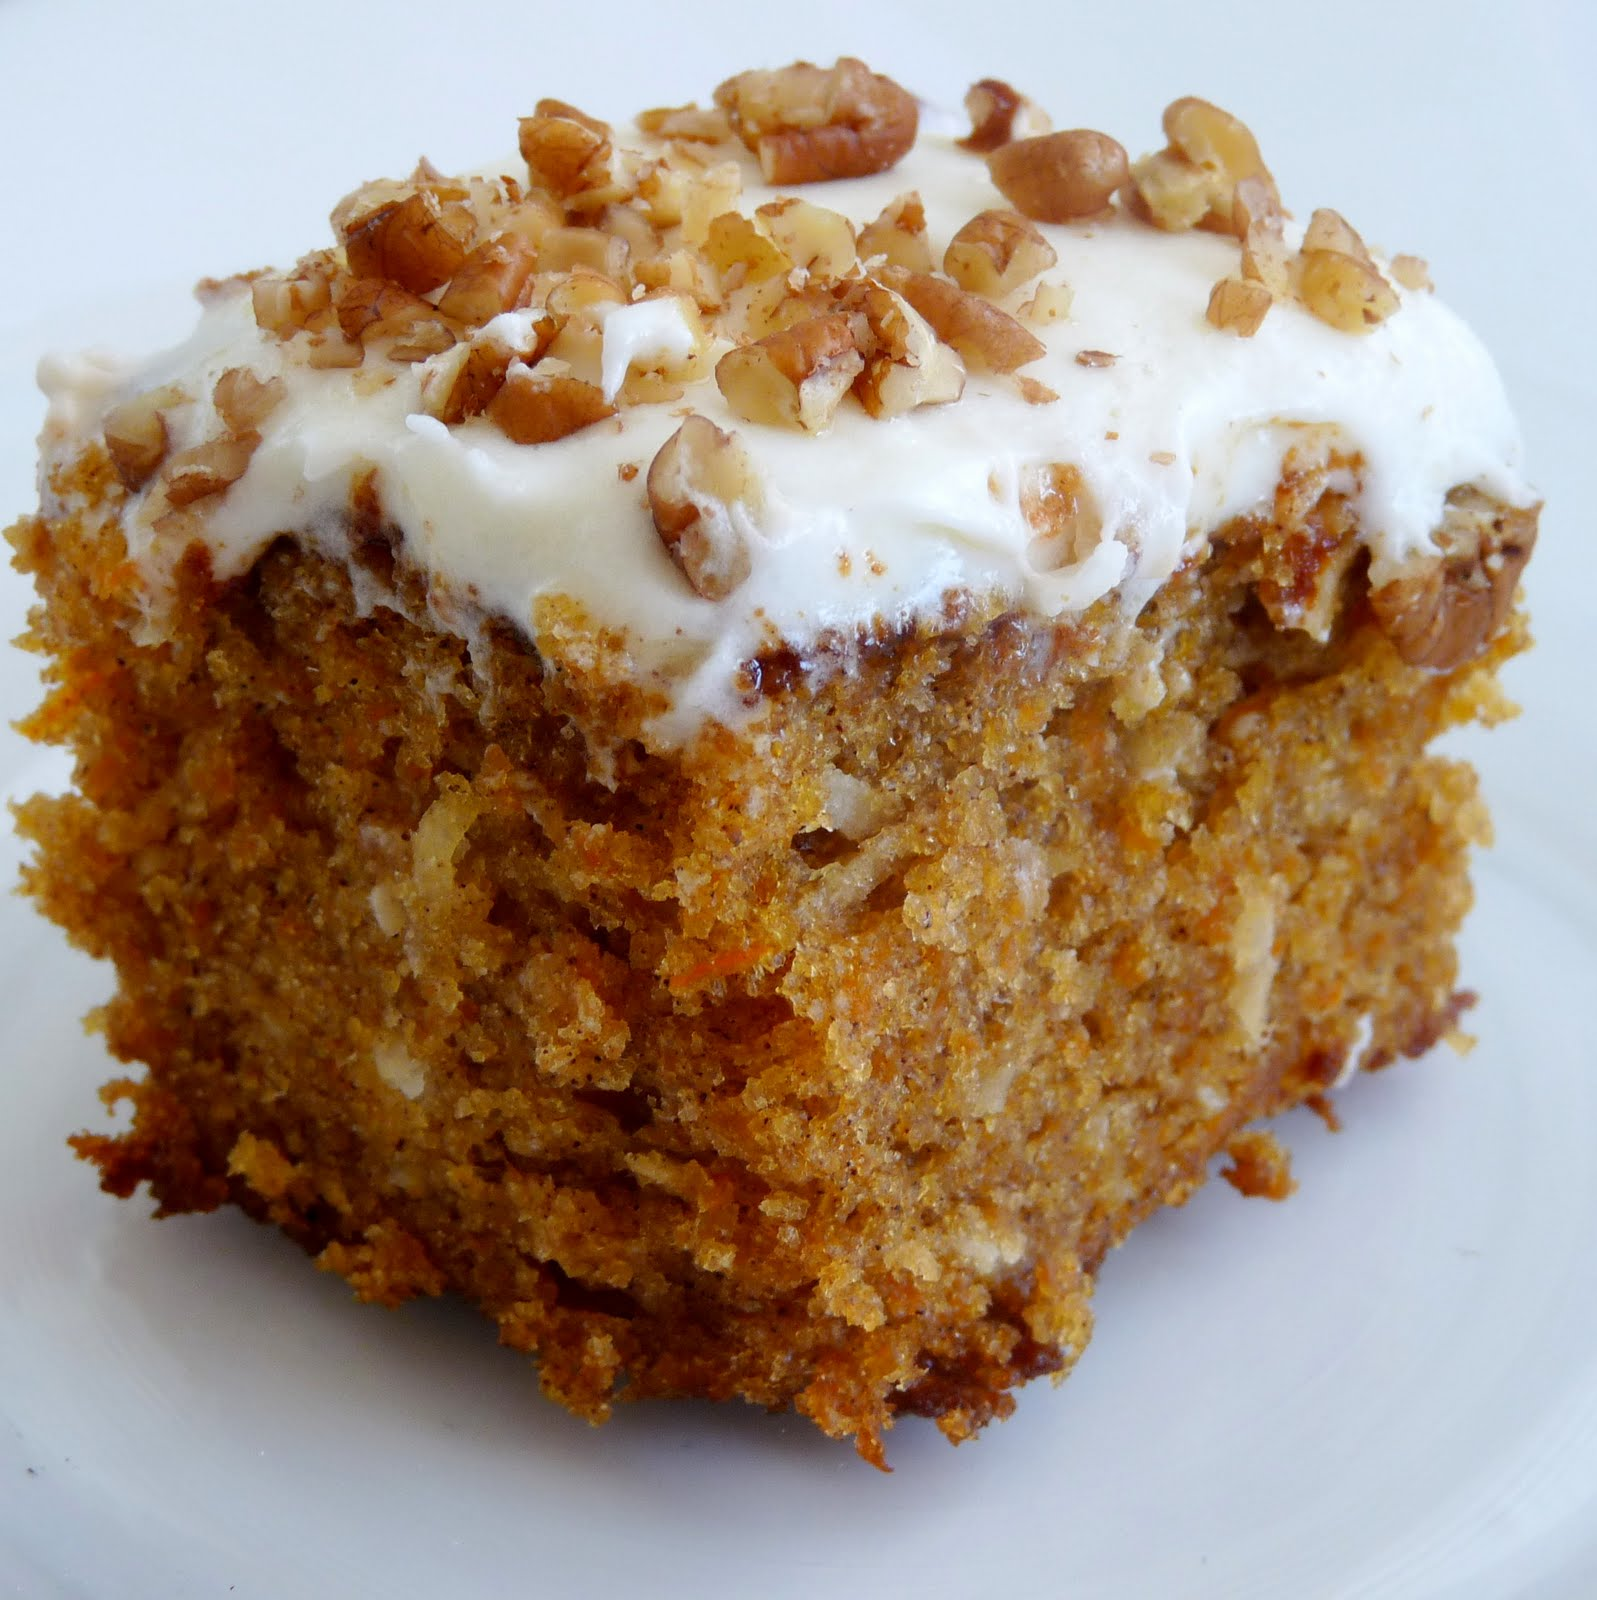 What's For Dinner?: Moist Orange Carrot Cake